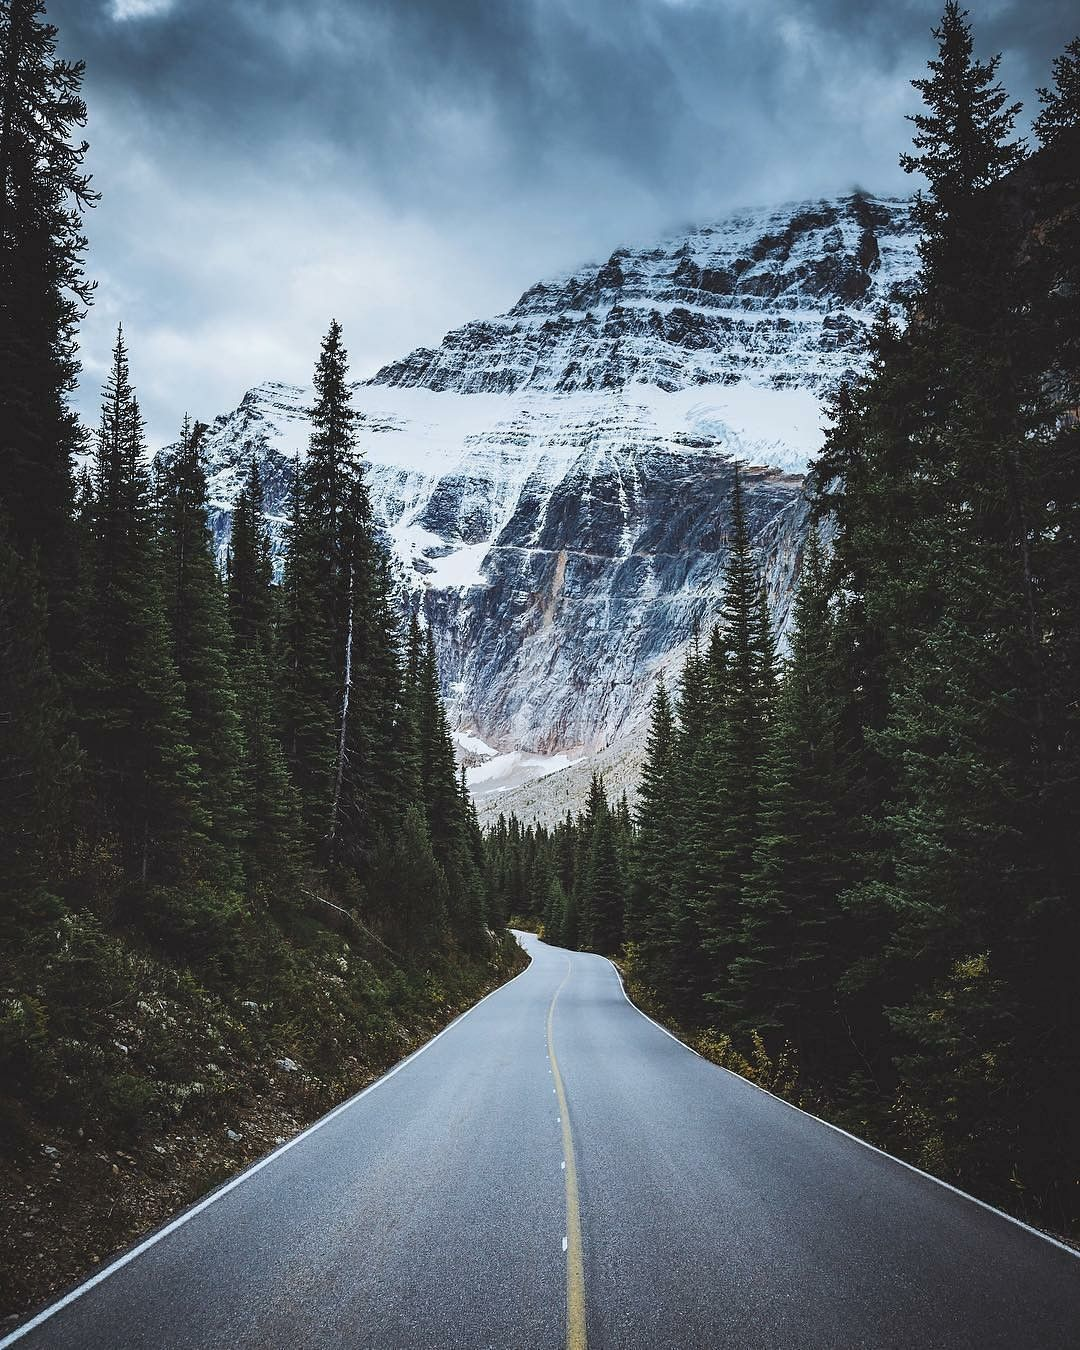 I Adore This Beautiful Mountain Landscape Photography Mountainlandscapephotography Mountain Landscape Photography Winter Landscape Landscape Photography